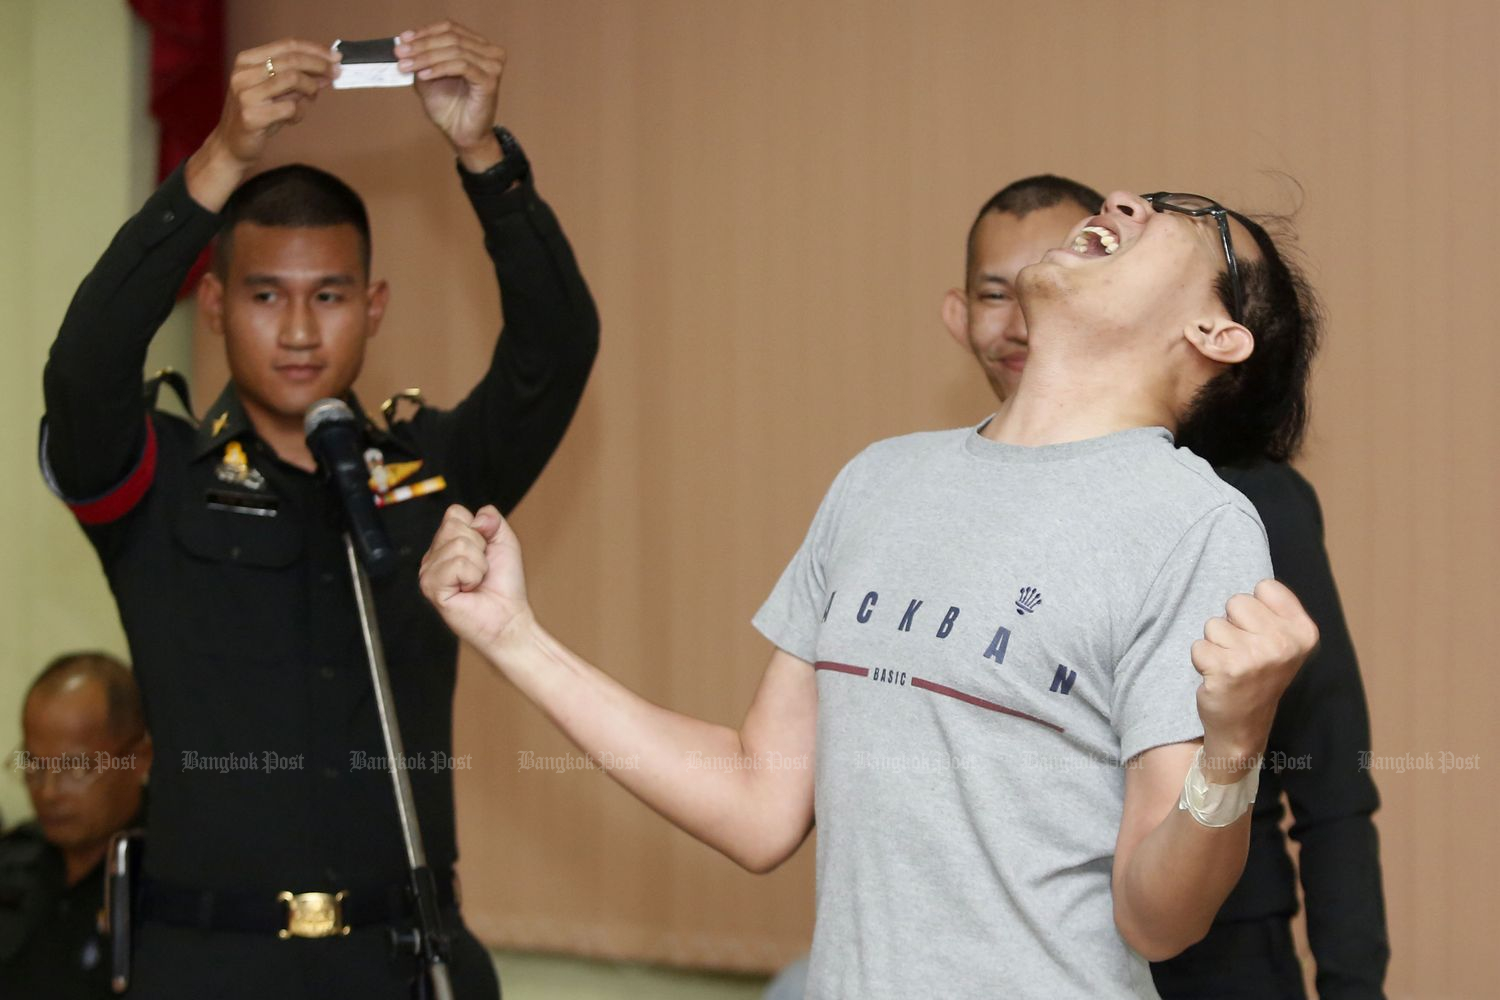 A man reacts after drawing a black card, which means he will not be drafted, at a recruiting station in Pomprap Sattruphai district, Bangkok, on April 1, 2018. (Photo by Pattarapong Chatpattarasill)